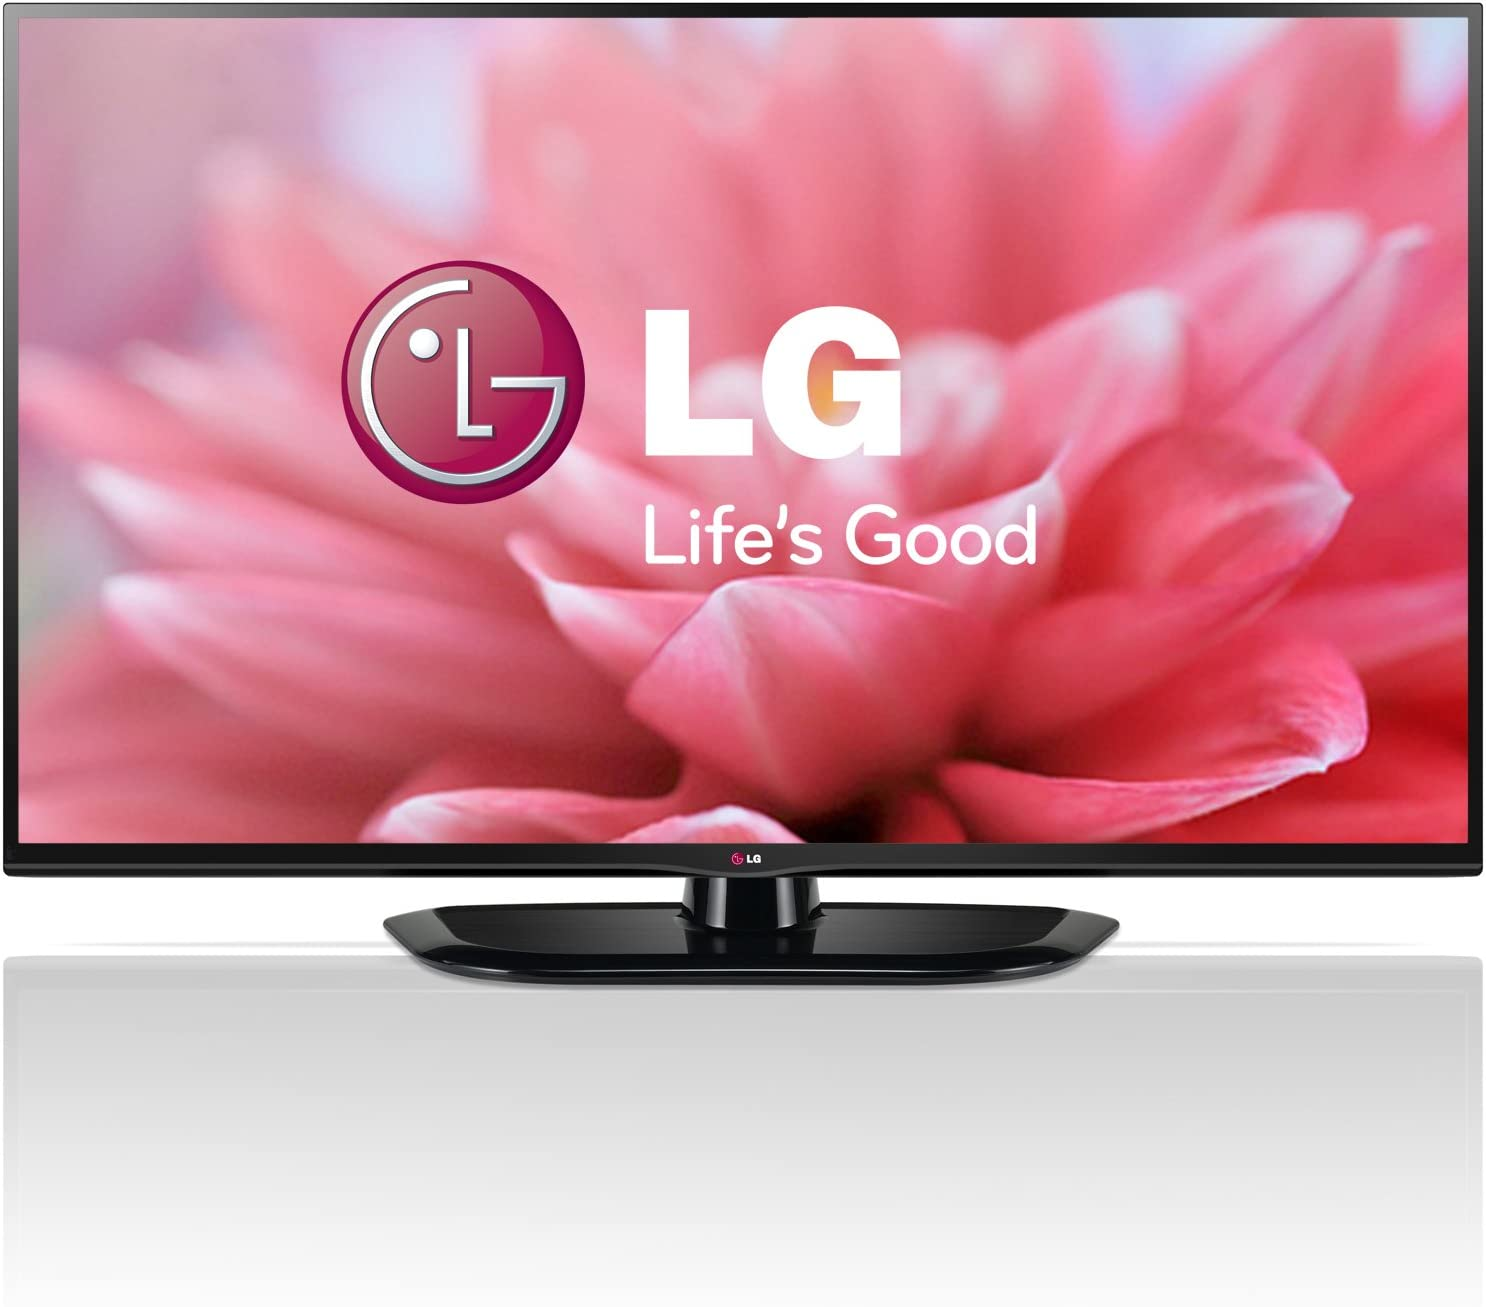 Amazon Com Lg 42pn450b 42 Inch Widescreen 720p Hd Ready Tv De Plasma Con Built In Freeview 600hz Computers Accessories